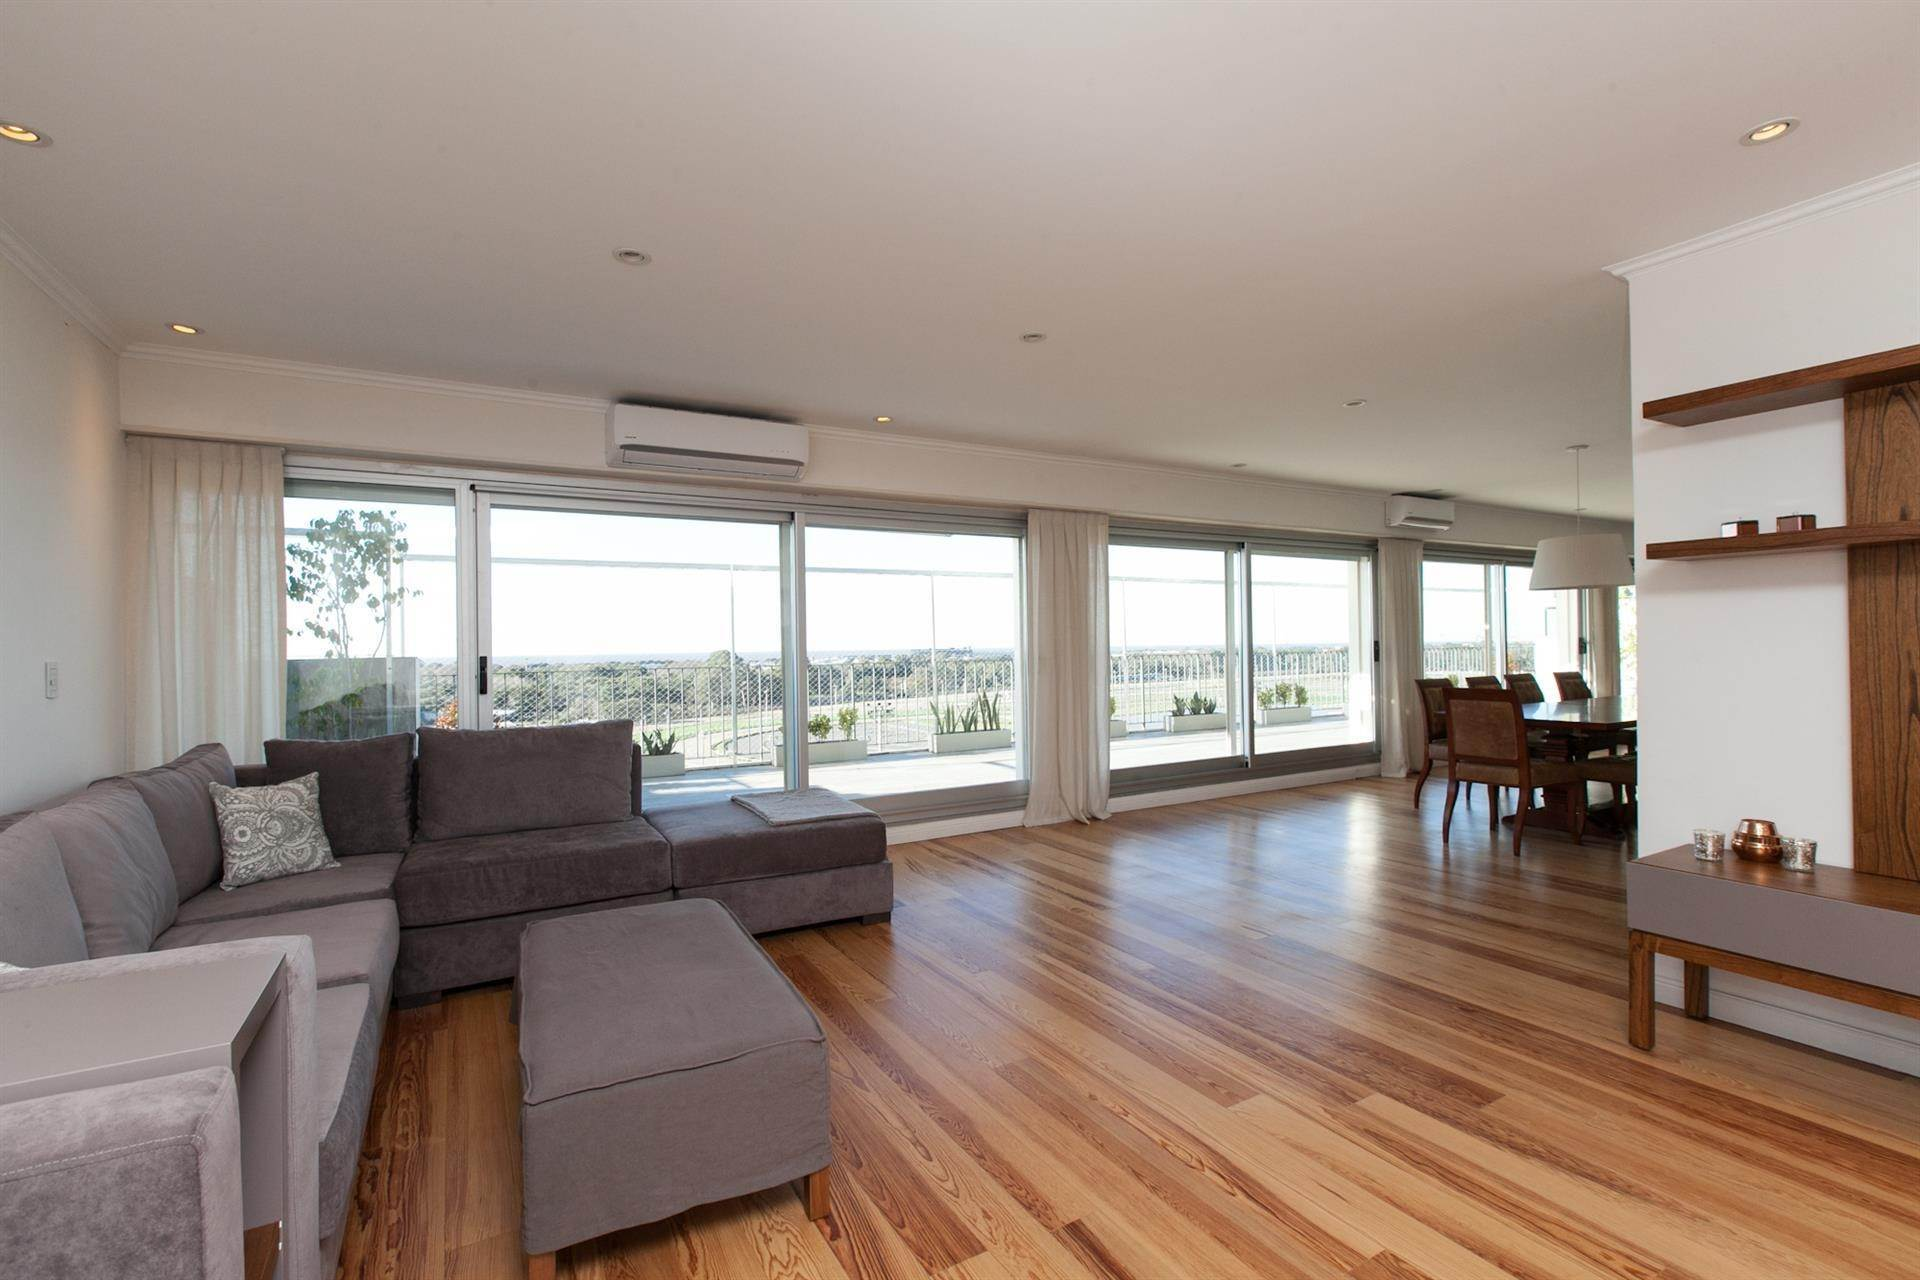 4. Residence/Apartment for Sale at Unique floor with unbeatable views. Palermo, Argentina